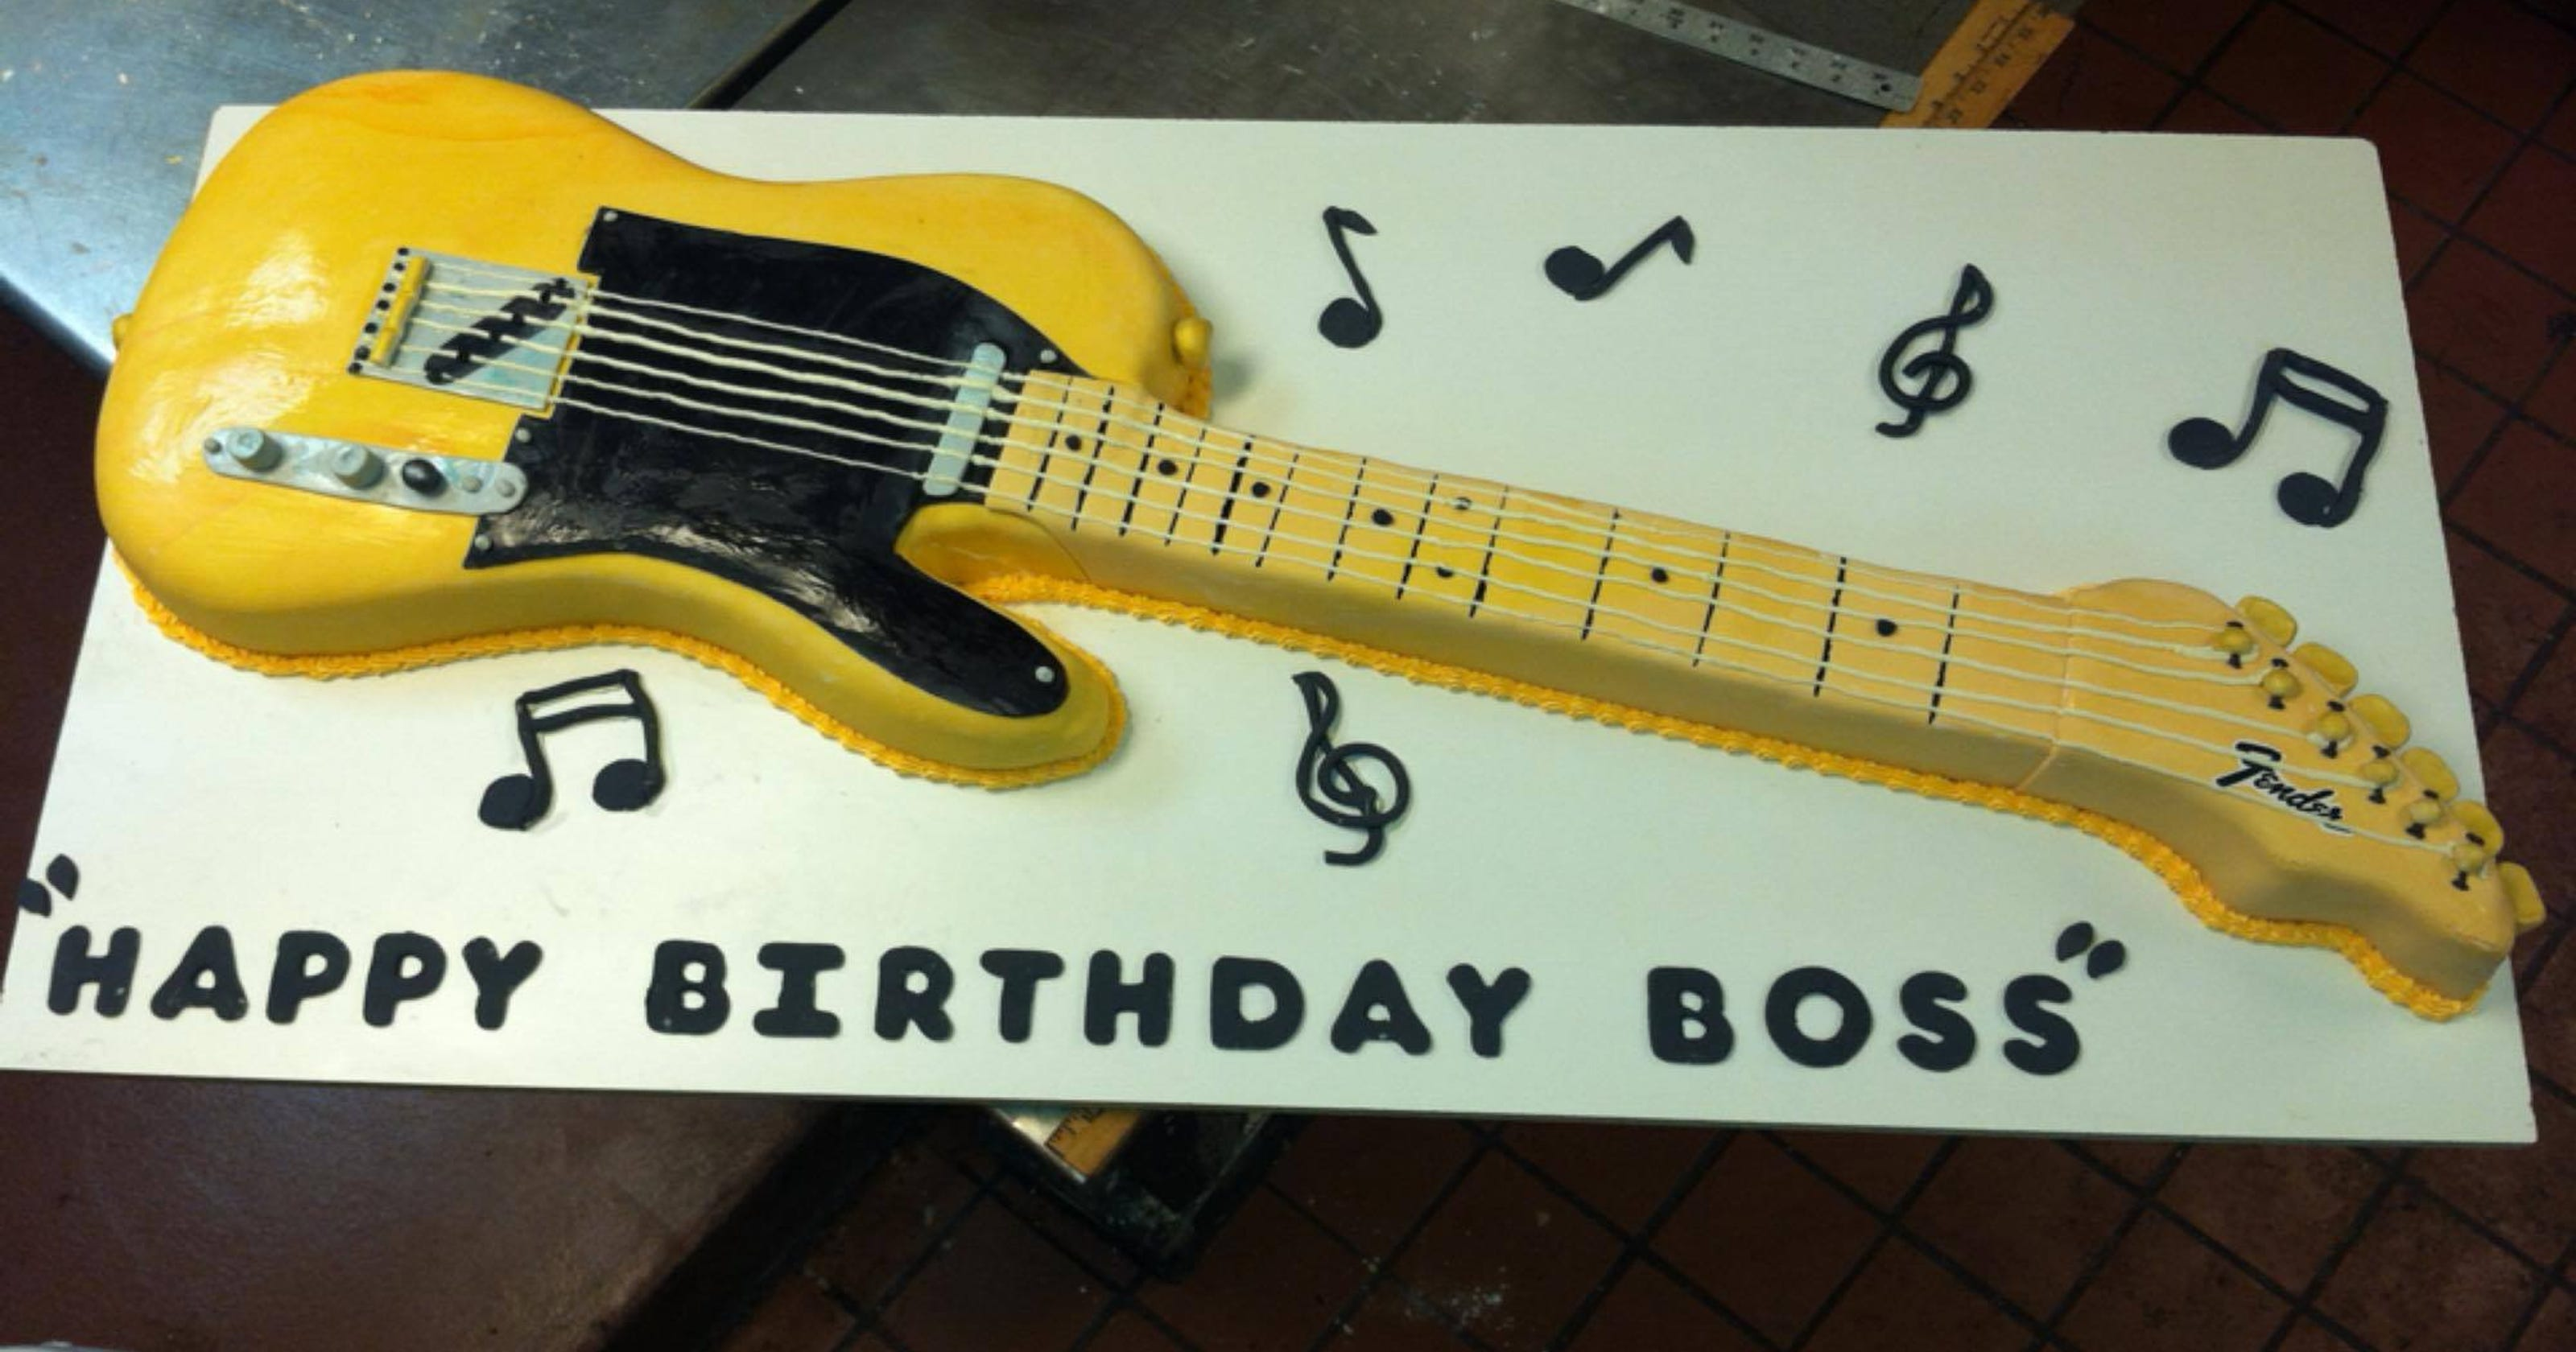 The Man Who Gave Bruce Springsteen His Birthday Cake